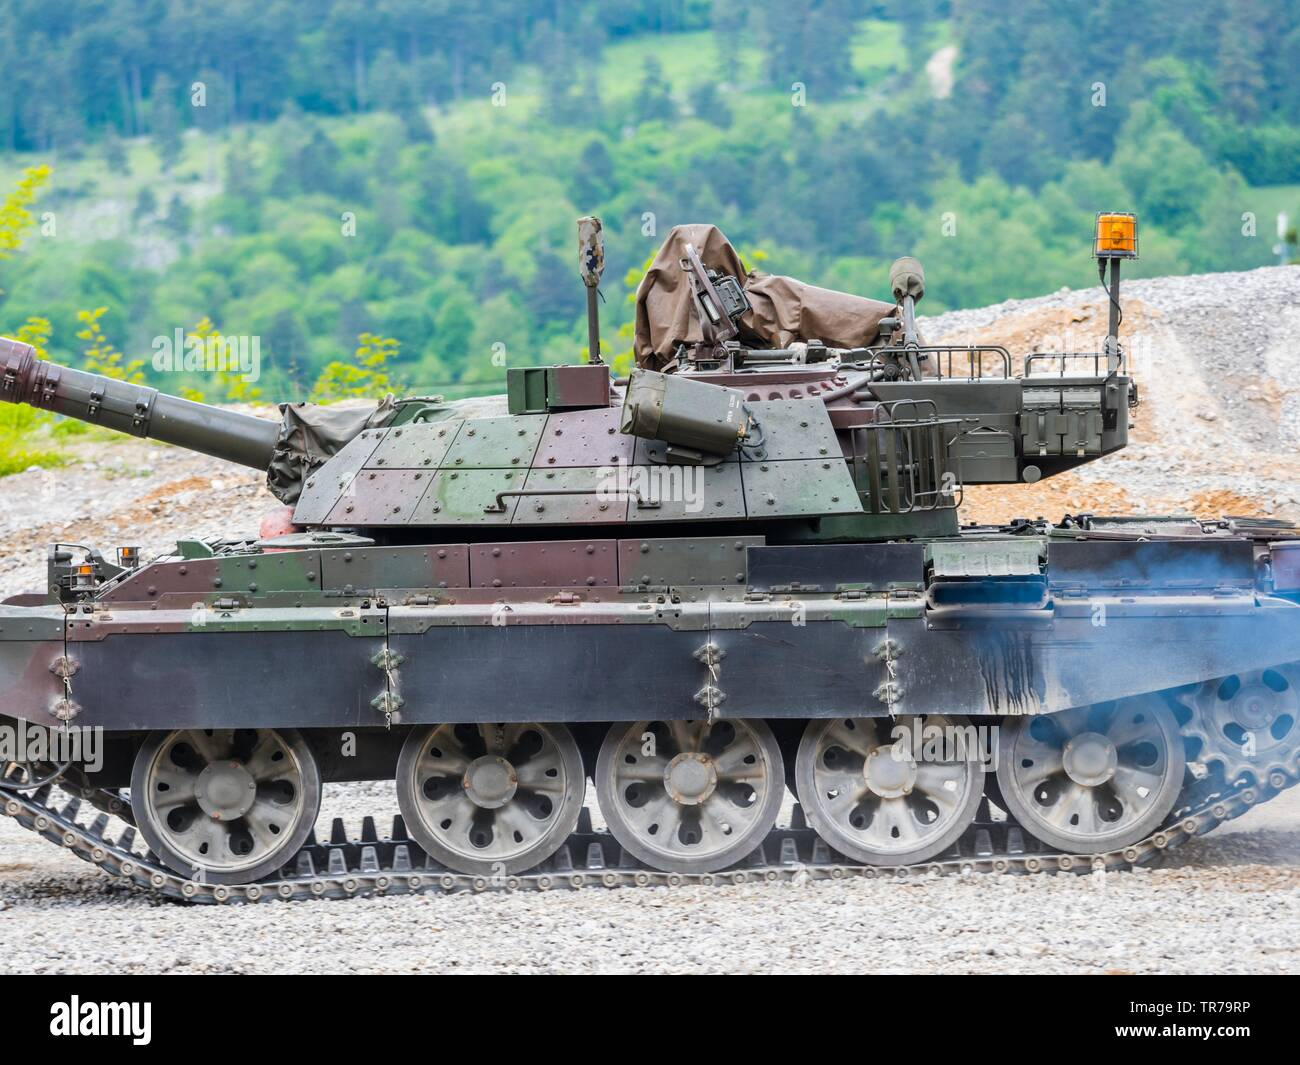 Slovenian MBT T-55S modified T-55 during public driving demonstration - Stock Image